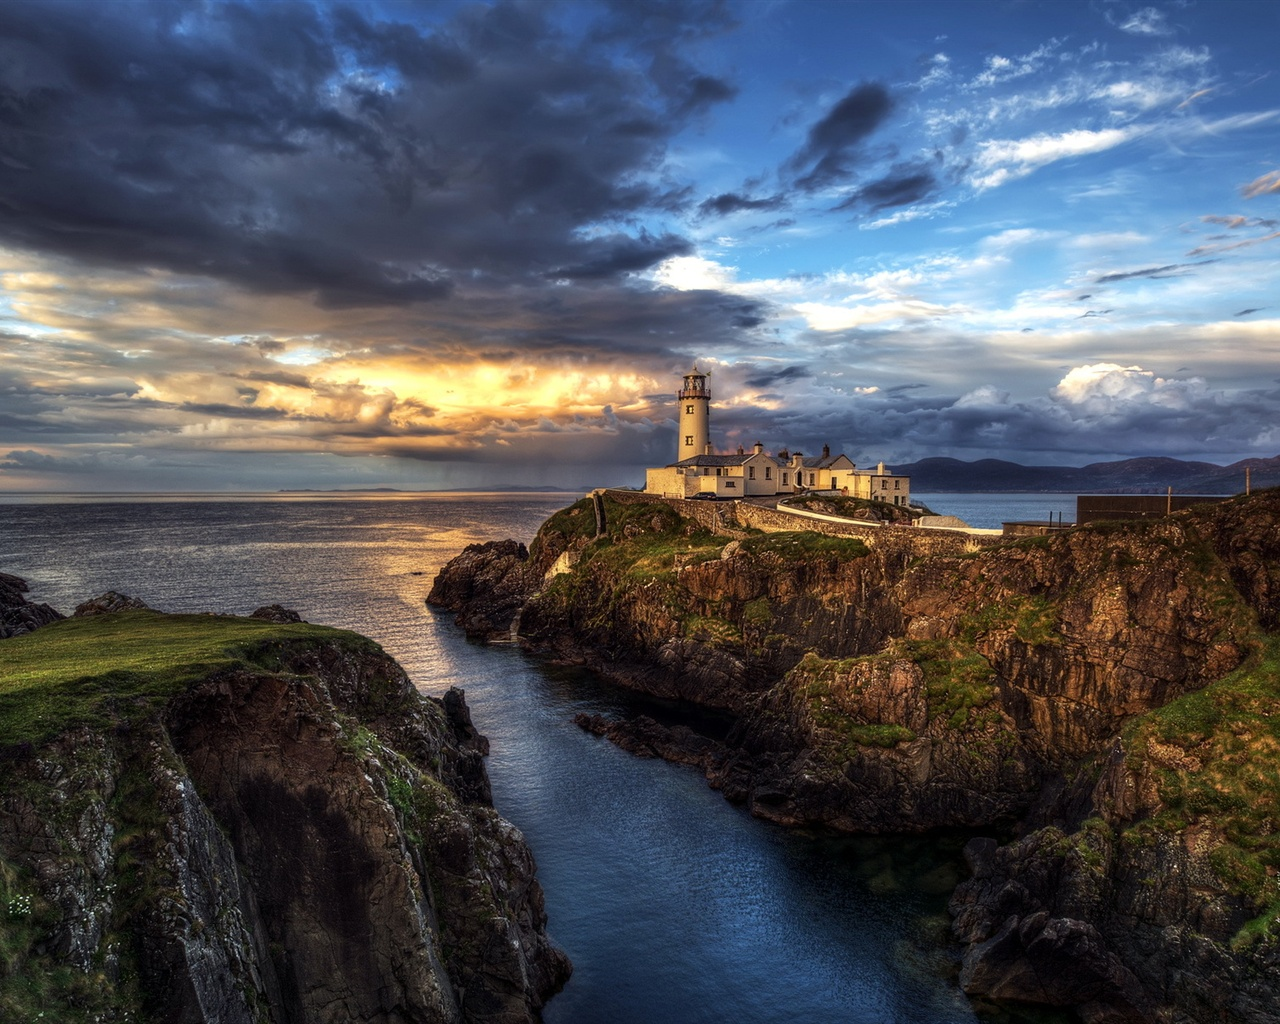 Wallpaper Ireland Lighthouse Ocean Seascape Sunset